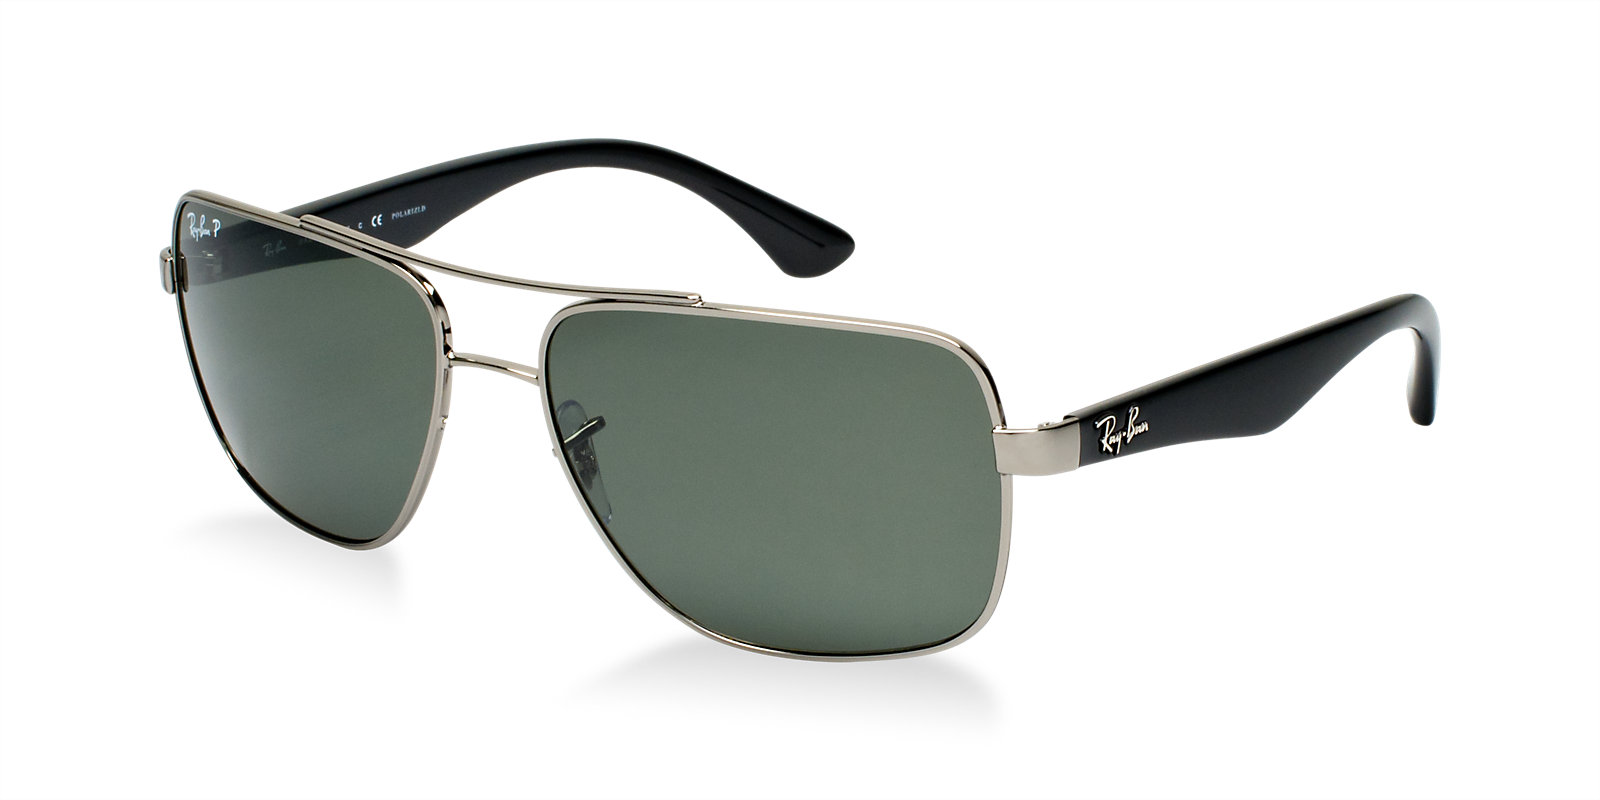 ray ban polarized sunglasses review  ray ban polarized sunglasses review